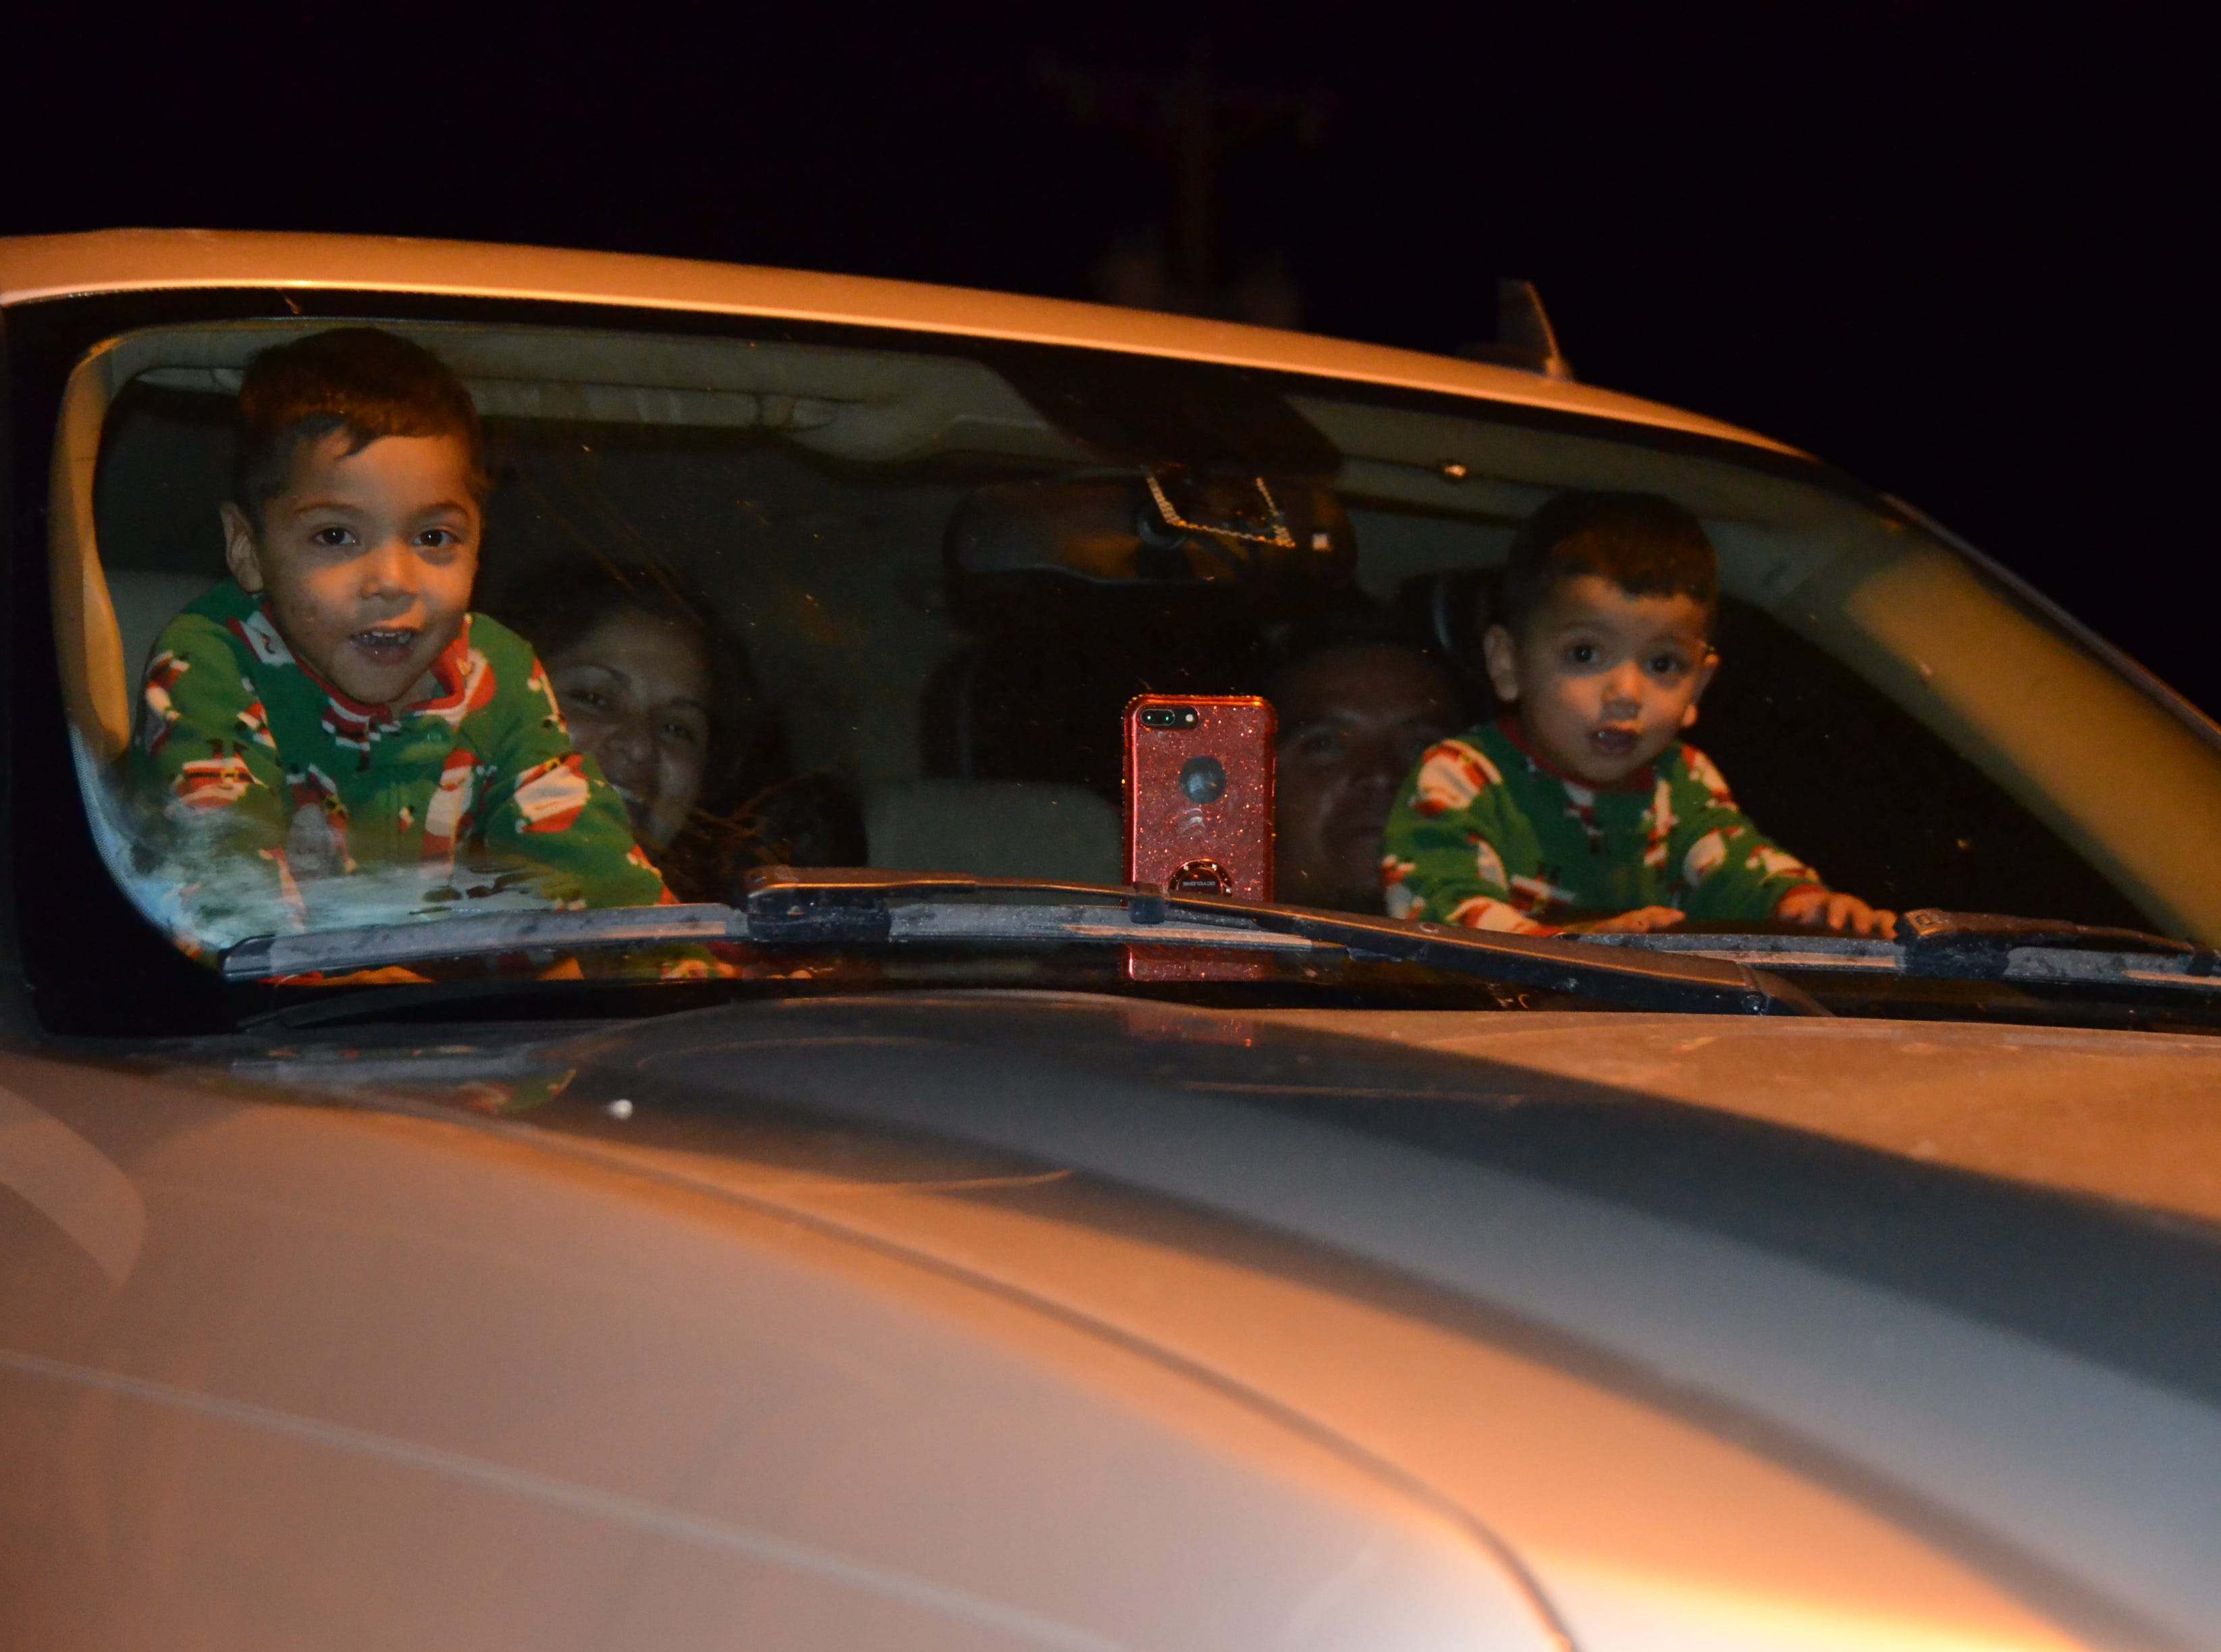 At left, Kevin Bautista, 4, and brother Ivan Bautista, 2, view the lighted Christmas parade from the inside of their family's truck.